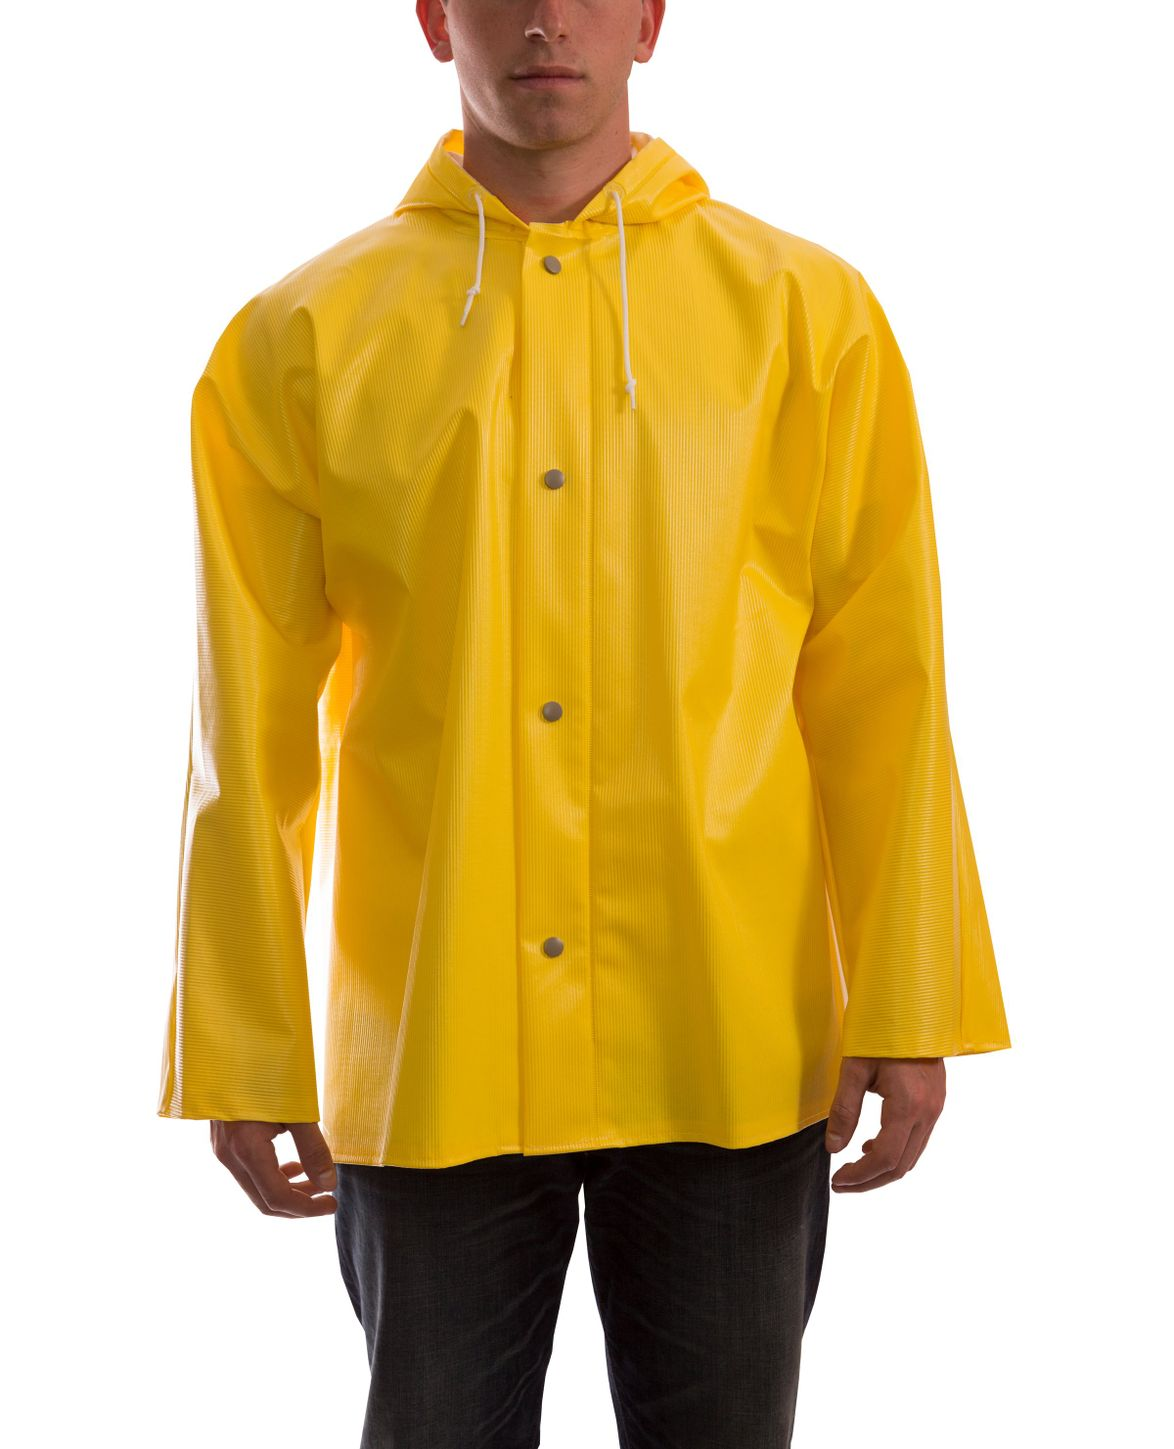 tingley-j31107-webdri-chemical-resistant-jacket-pvc-coated-tear-resistant-with-attached-hood-front.jpg